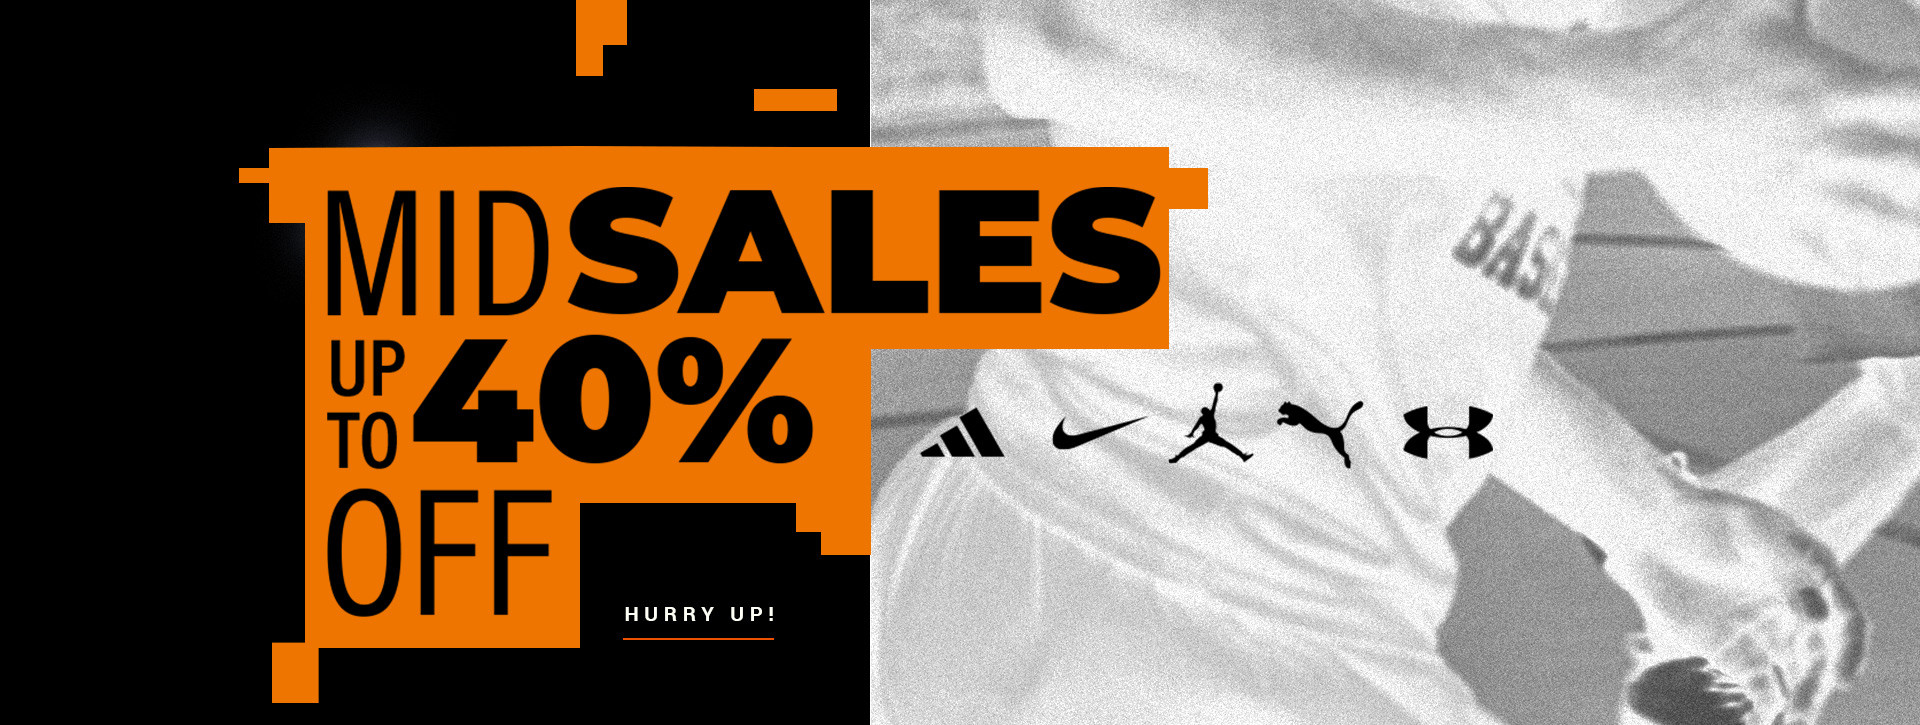 Mid sales up to -40%